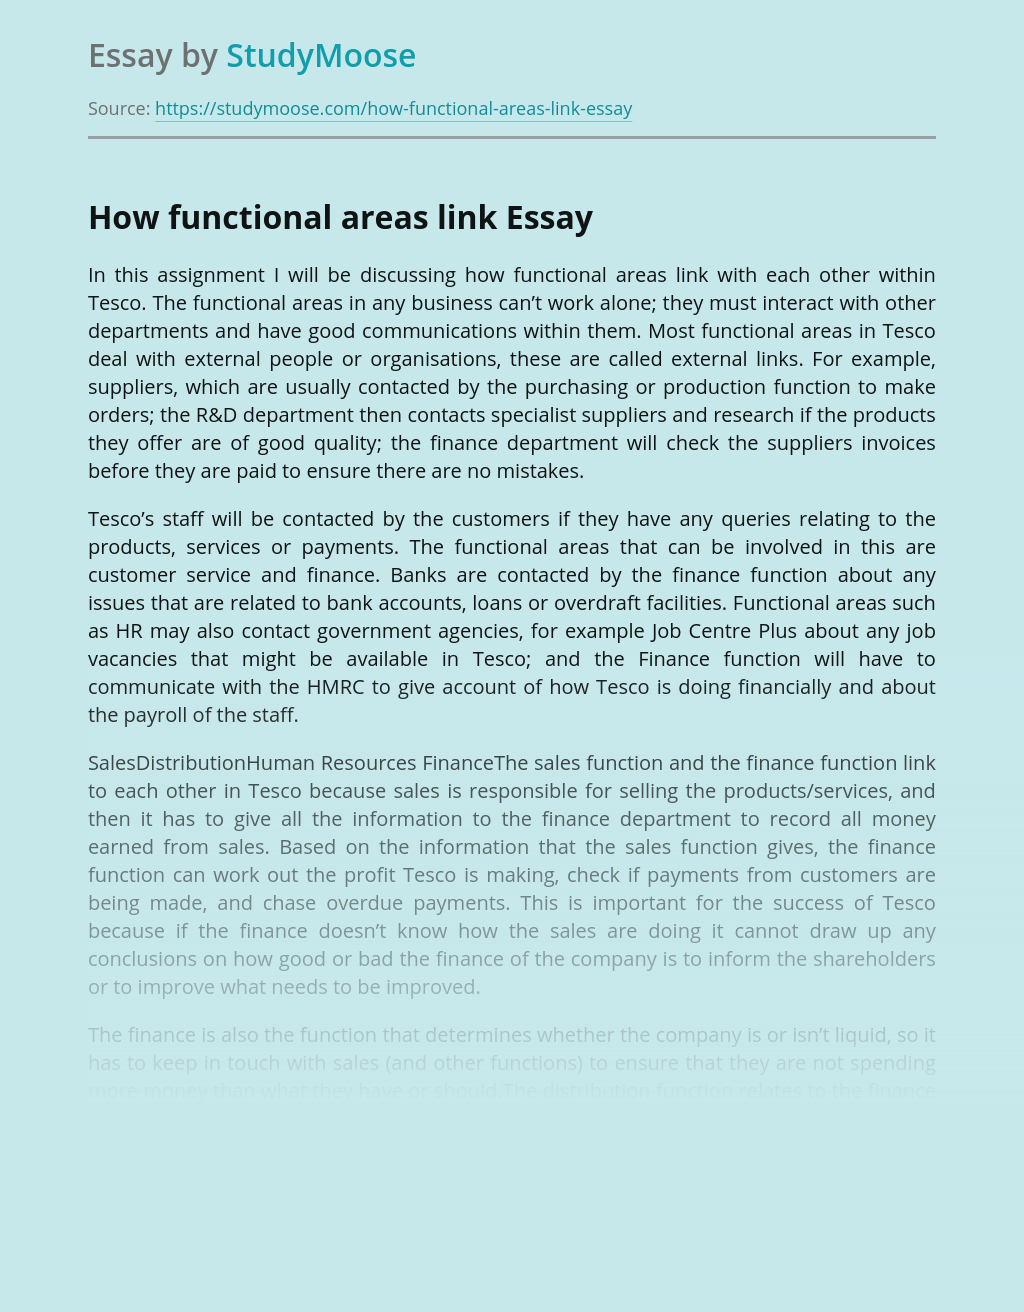 How Functional Areas Link in Tesco Company?